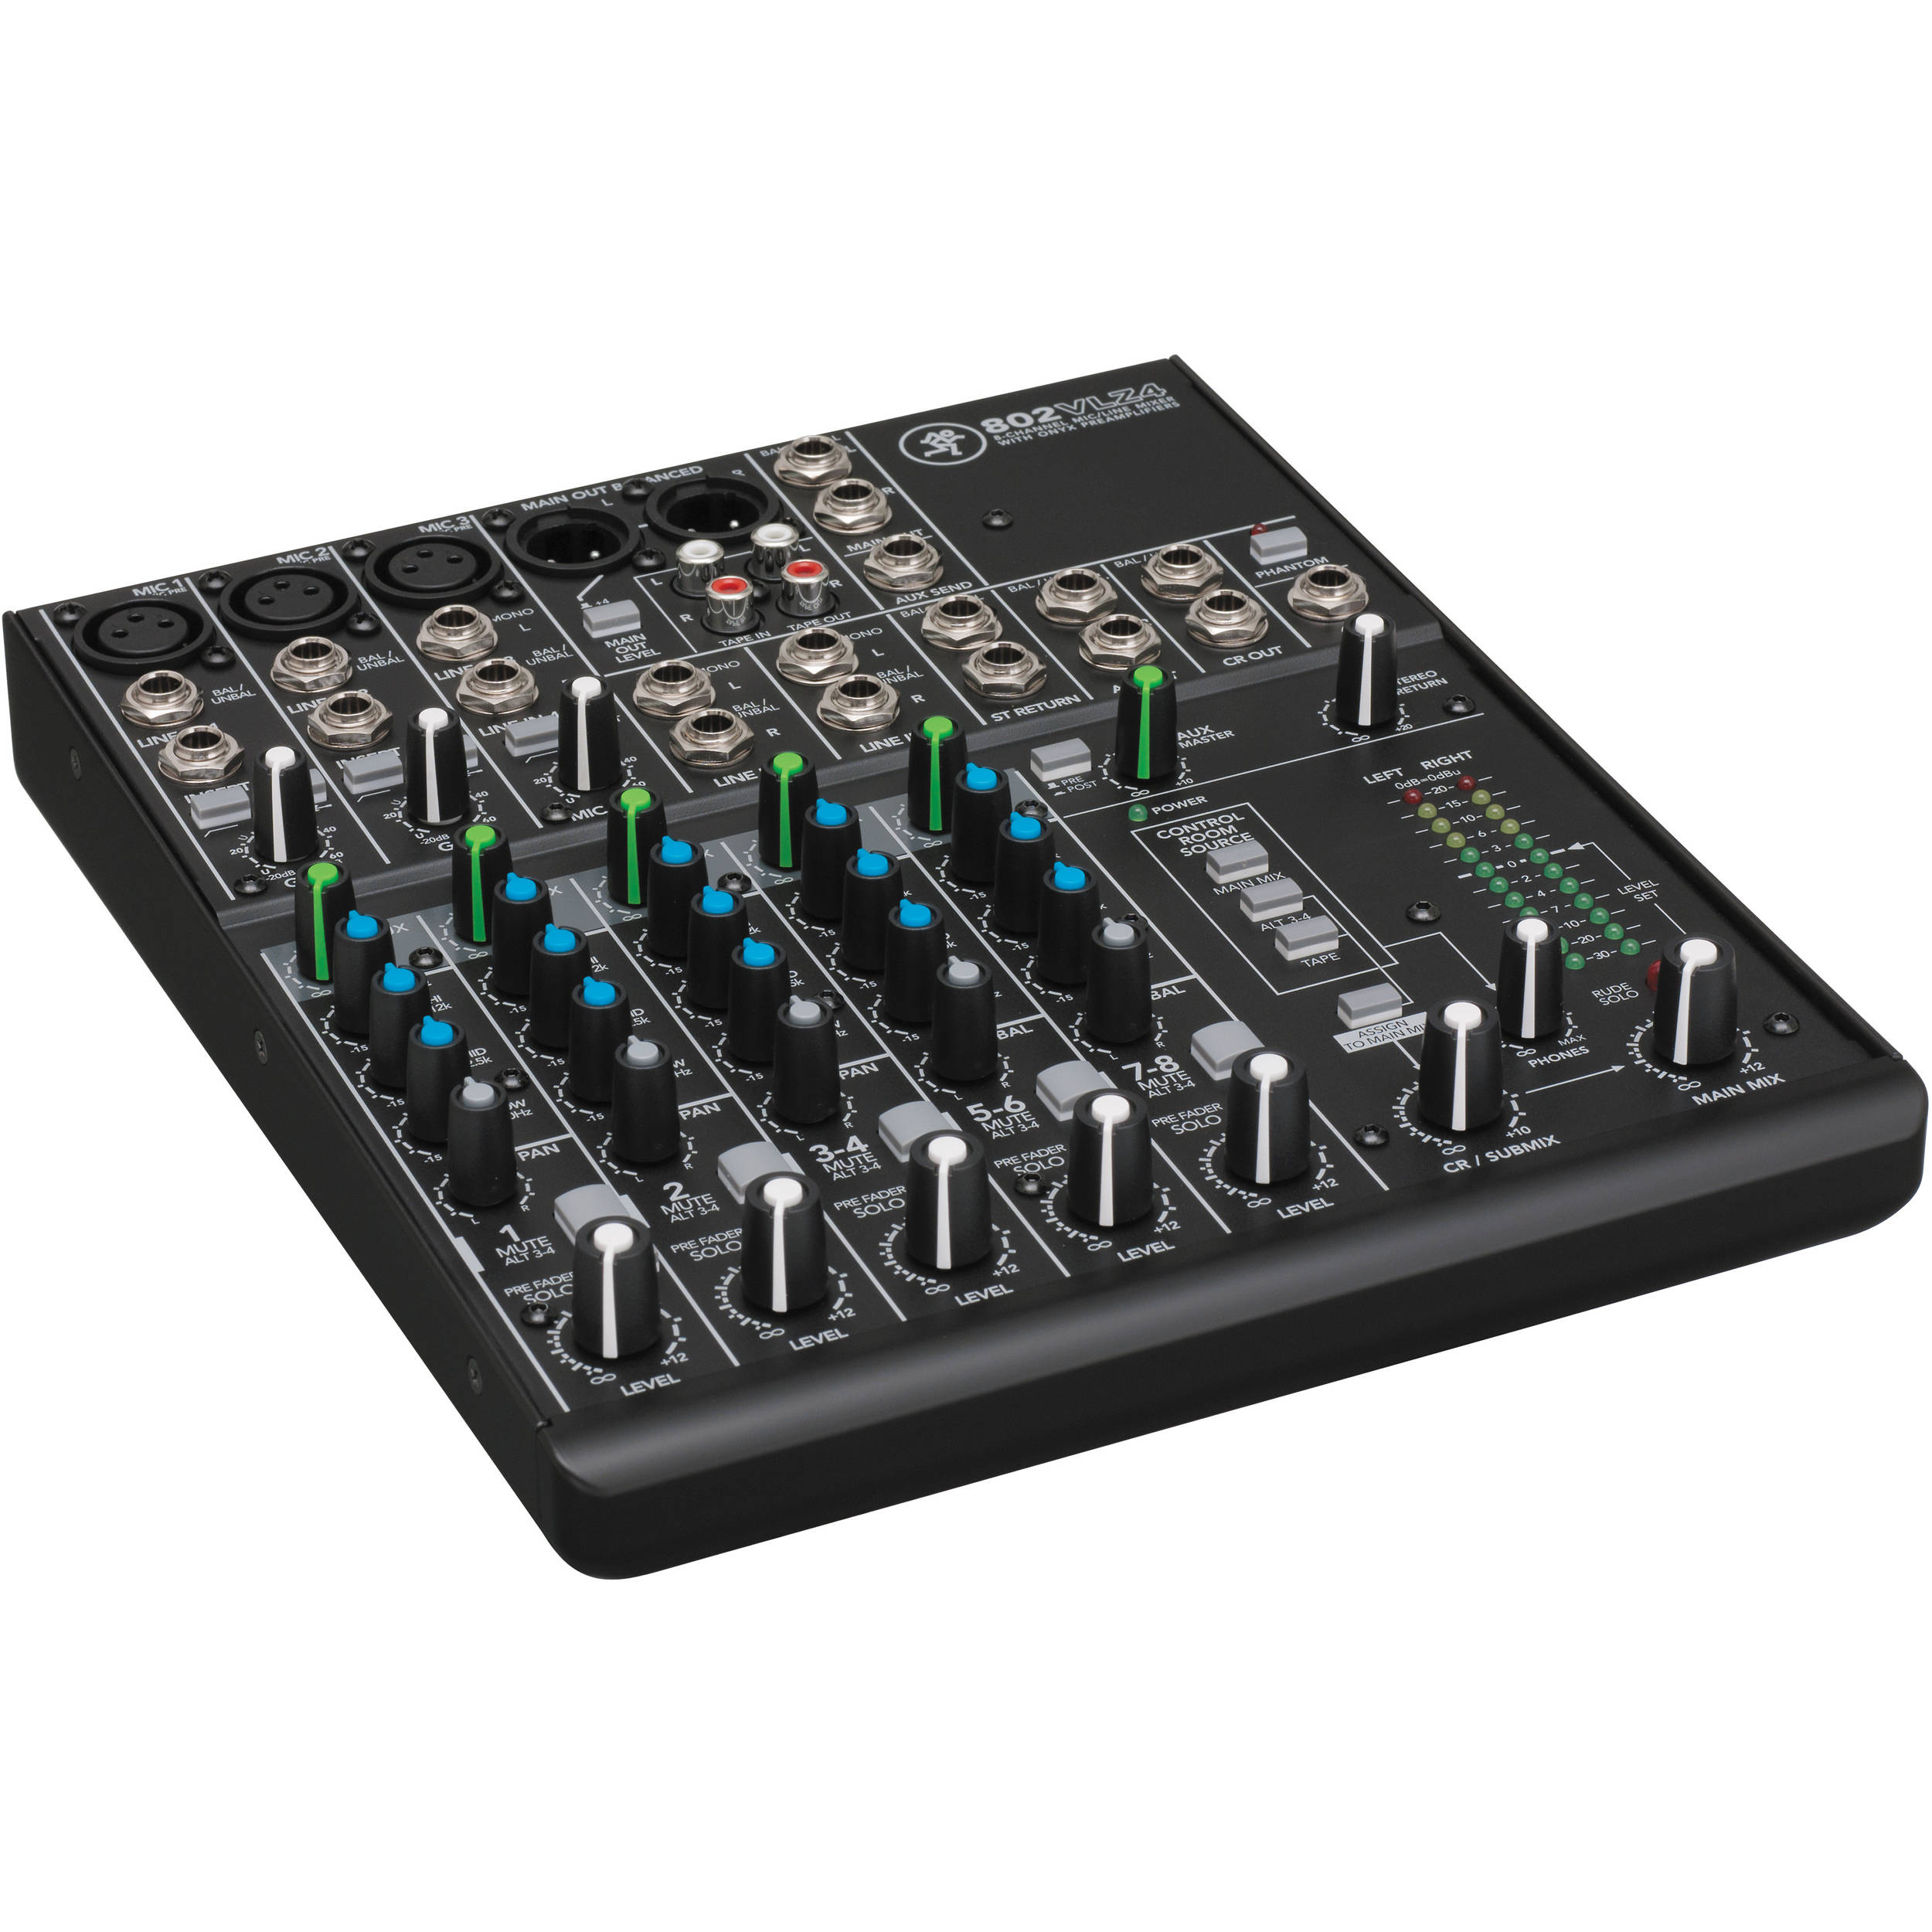 Jb Lighting Micro Plus Mackie 802vlz4 8 Channel Ultra Compact Mixer